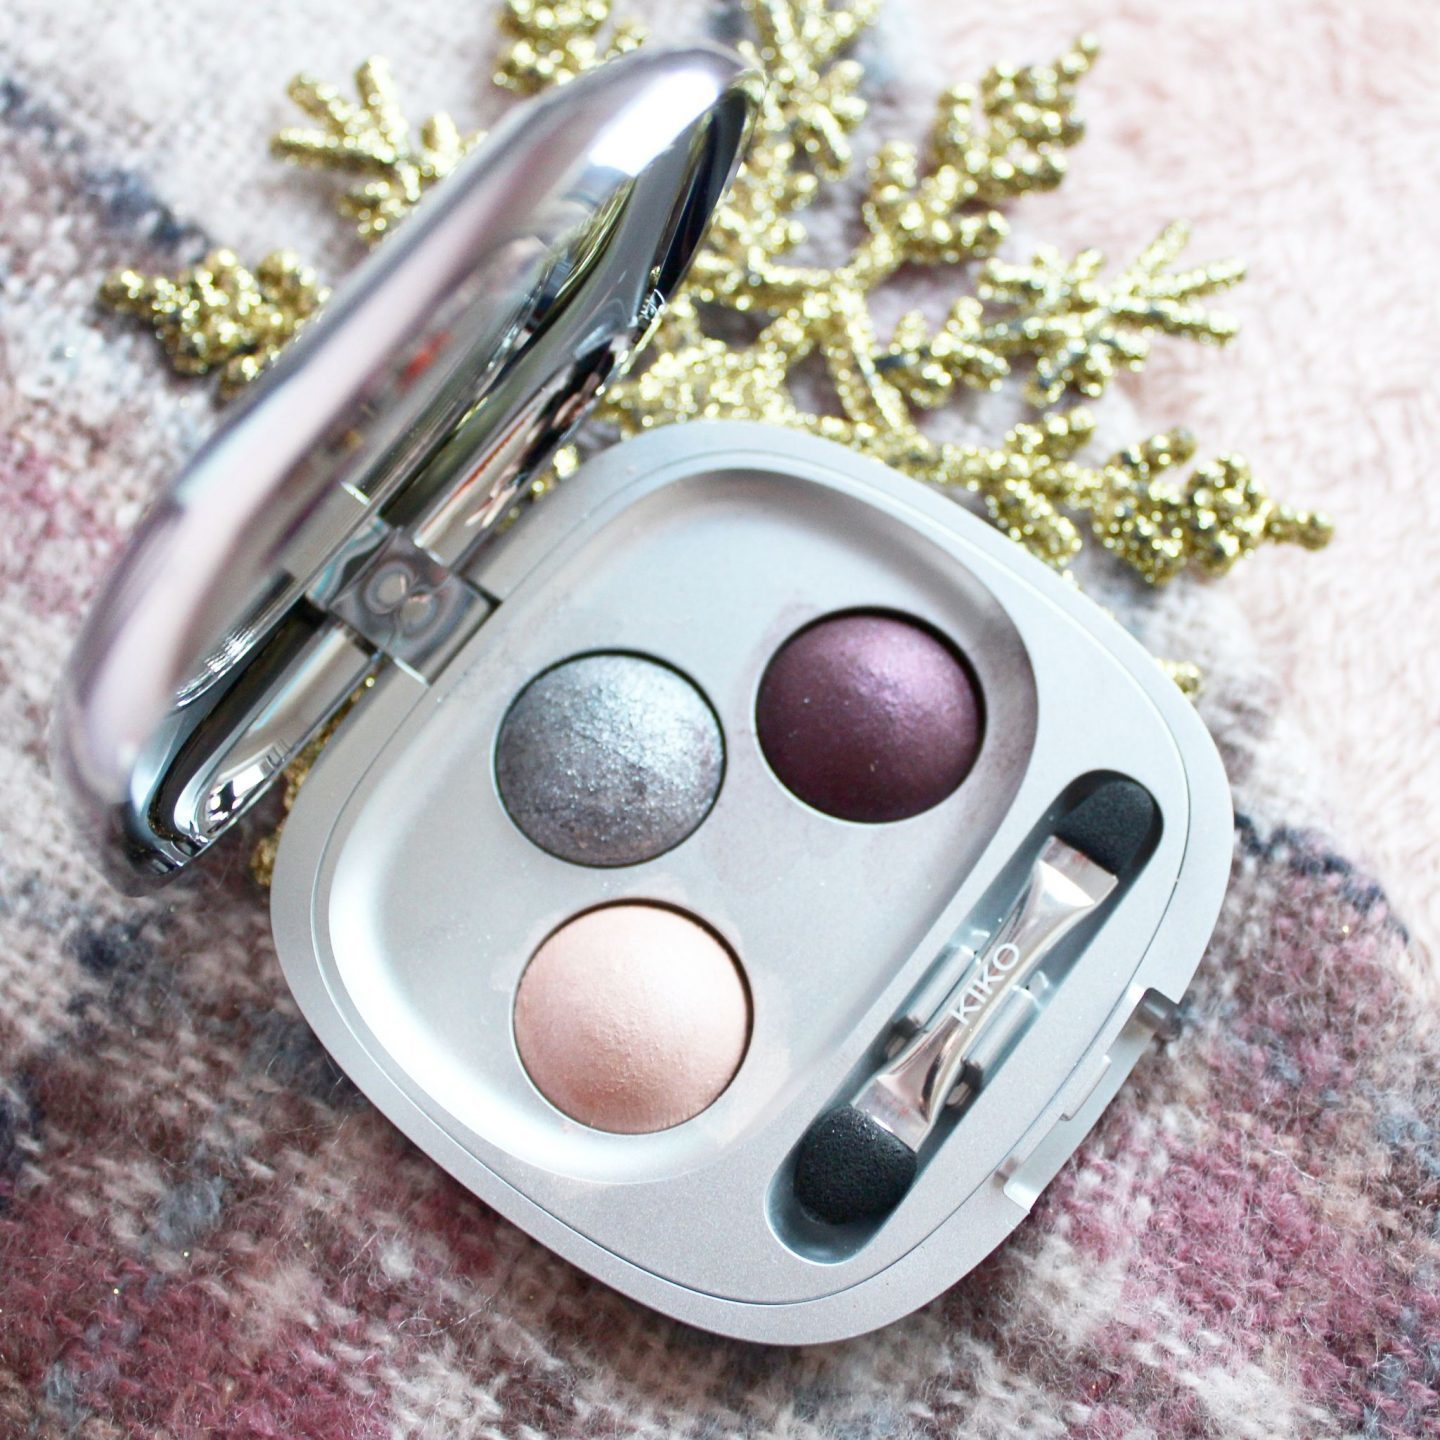 Kiko Milano Arctic Holiday Eyeshadow Palette | The Most Disappointing Palette of 2017?